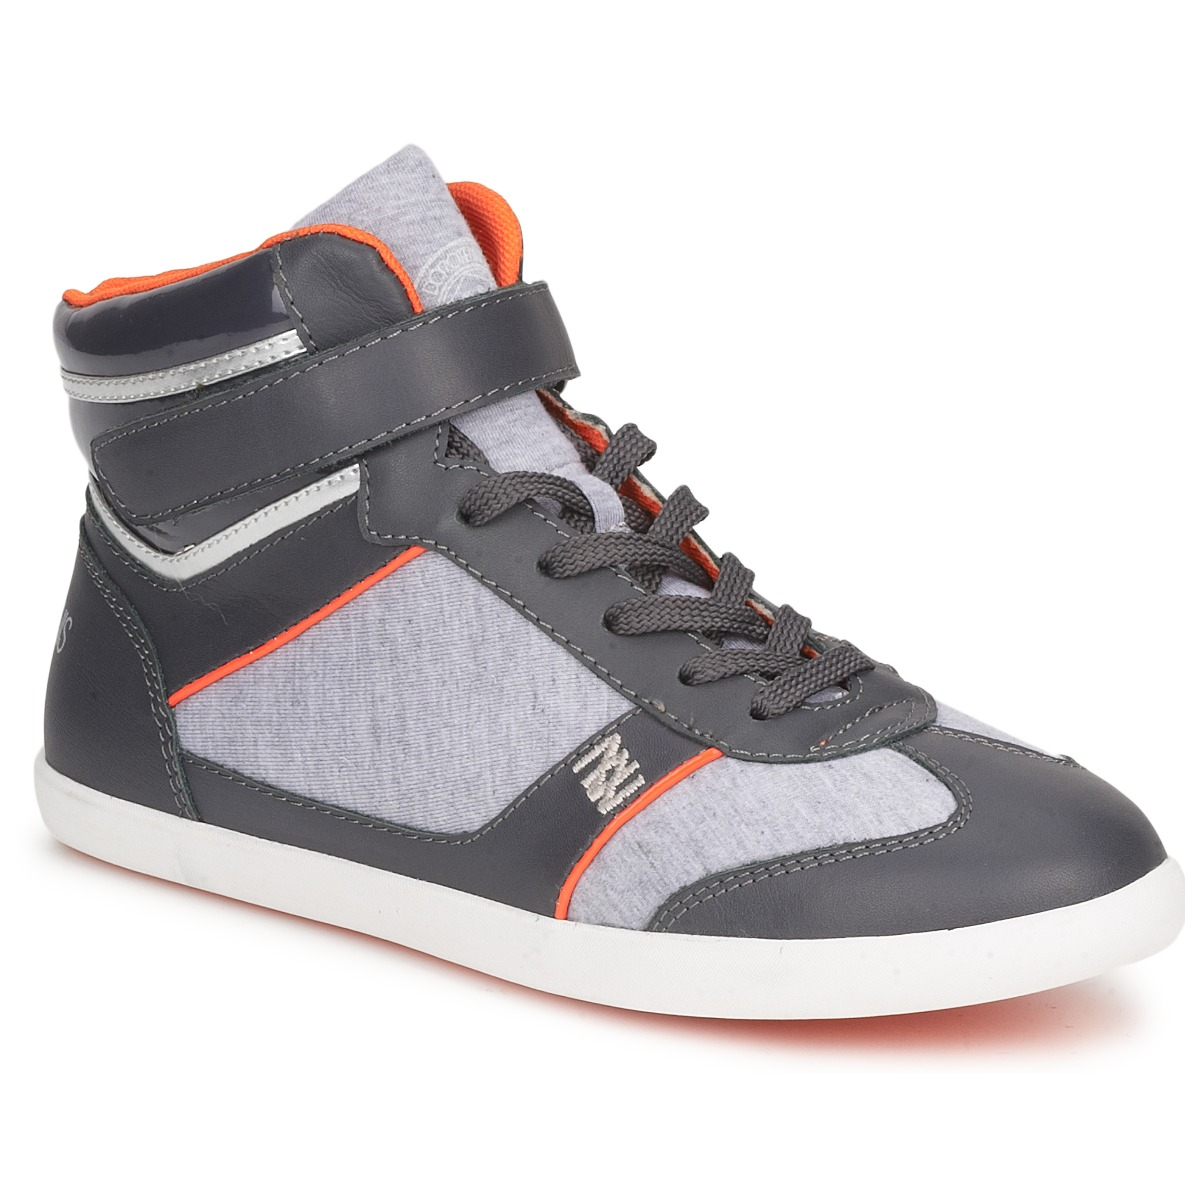 Sneakers Dorotennis  MONTANTE LACETS VELCRO